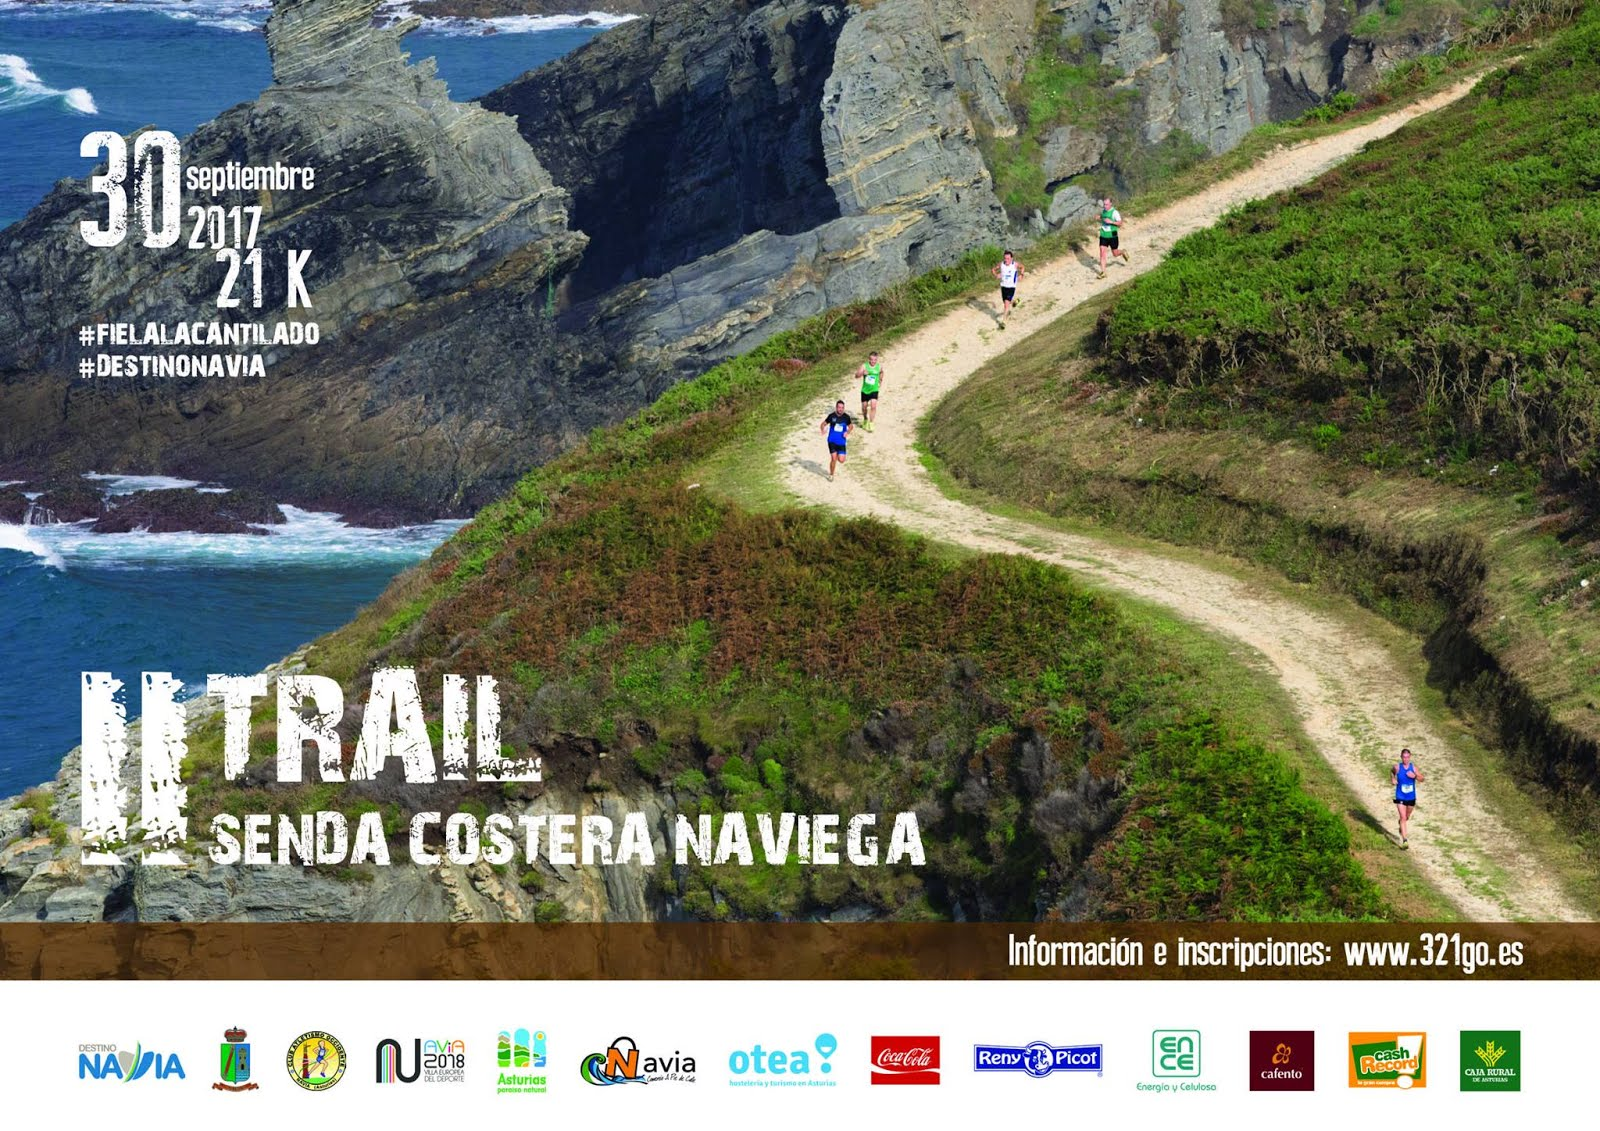 II TRAIL SENDA COSTERA 2017